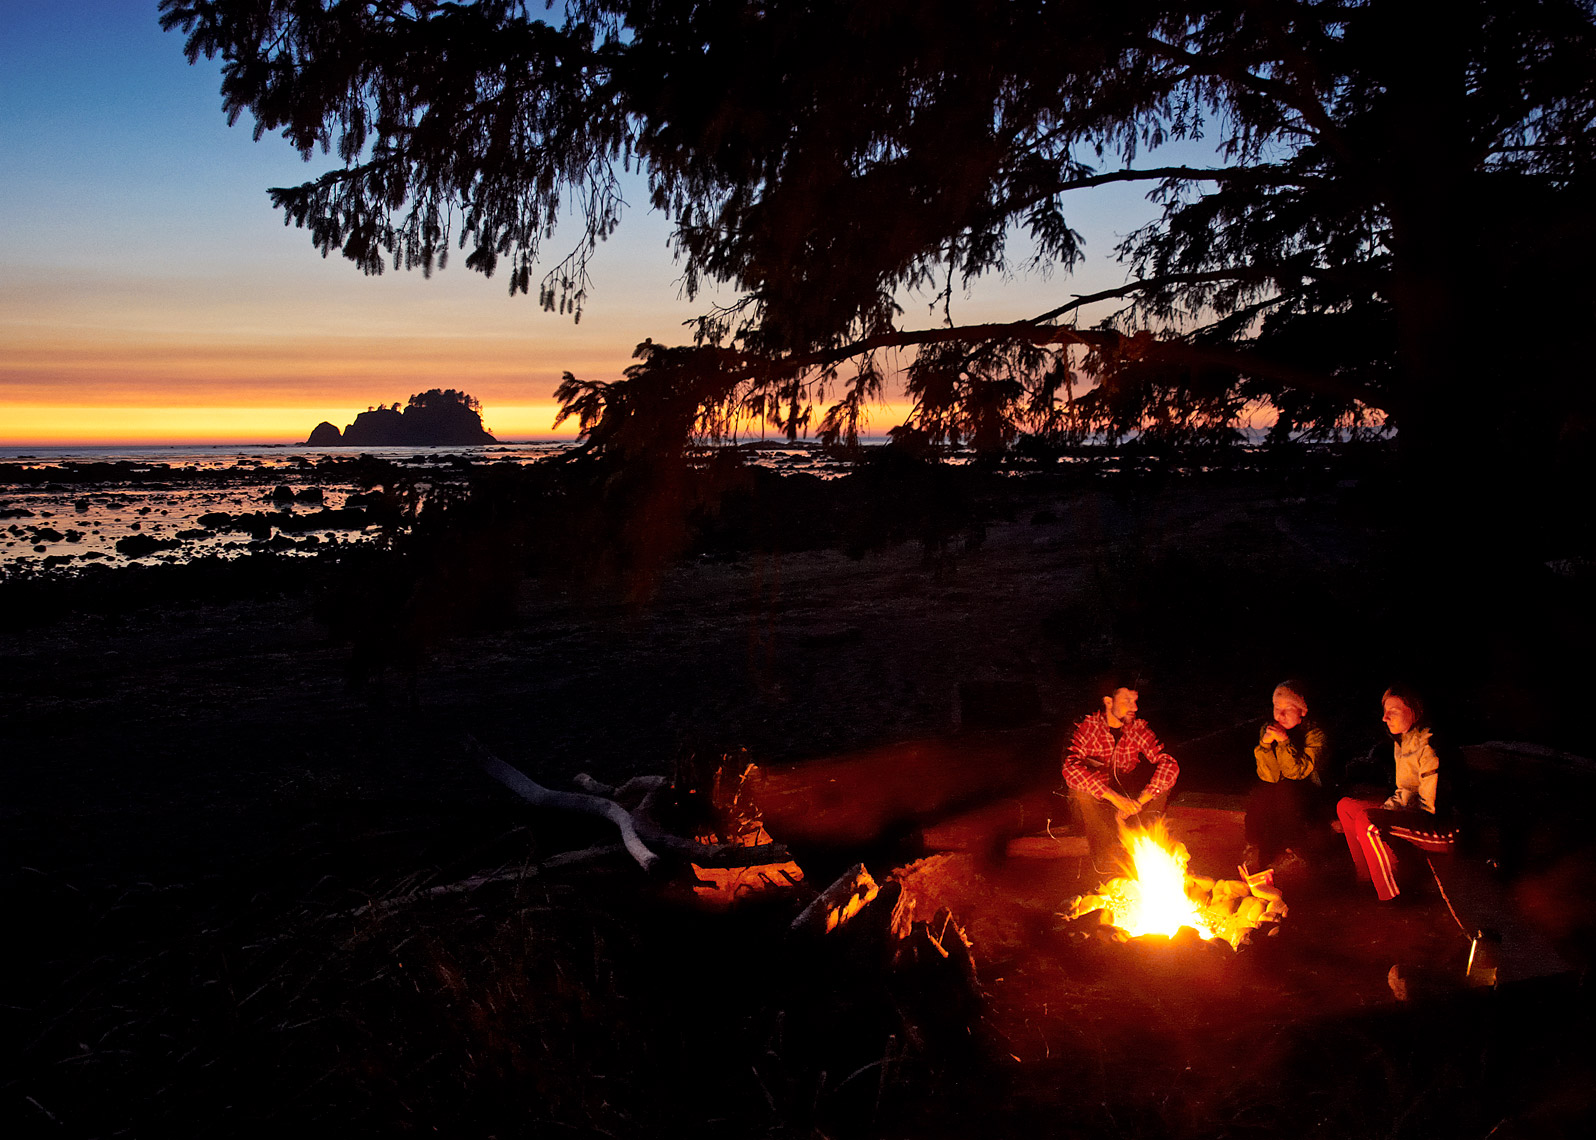 sunset photography captures friends enjoying PNW lifestyle